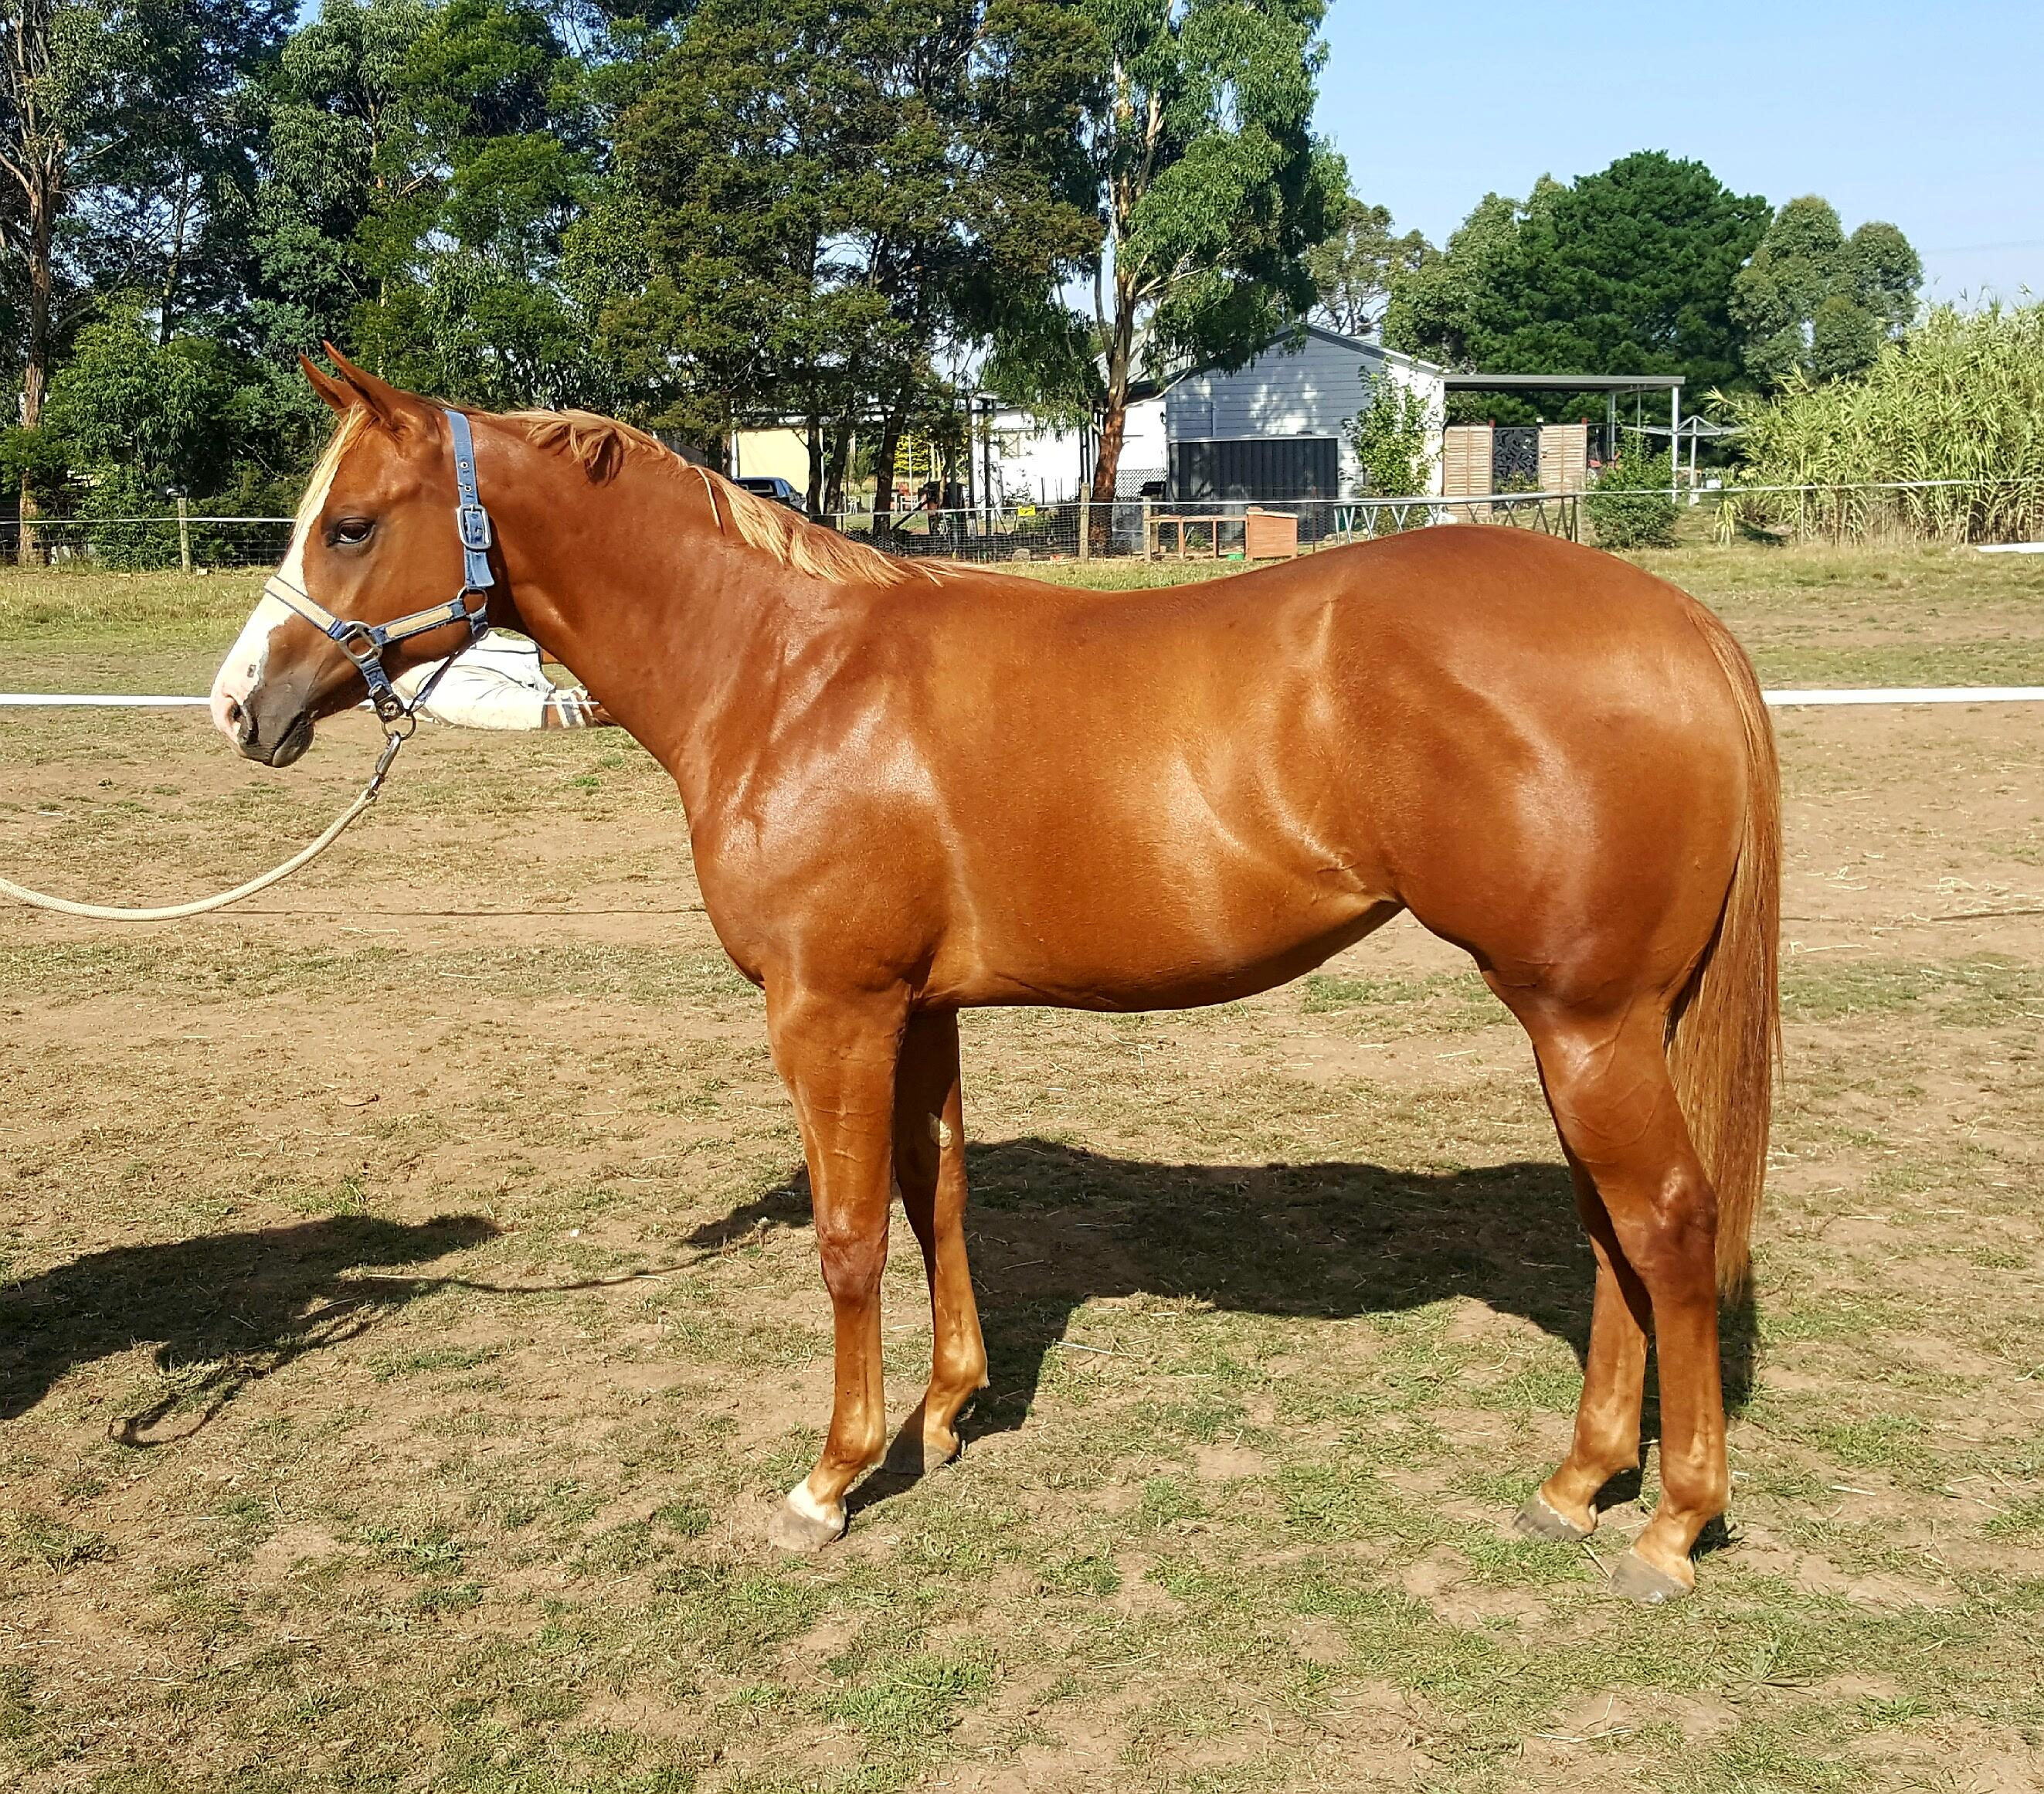 Yearling Filly Q-83023 by LP Kids Yella Image(imp)